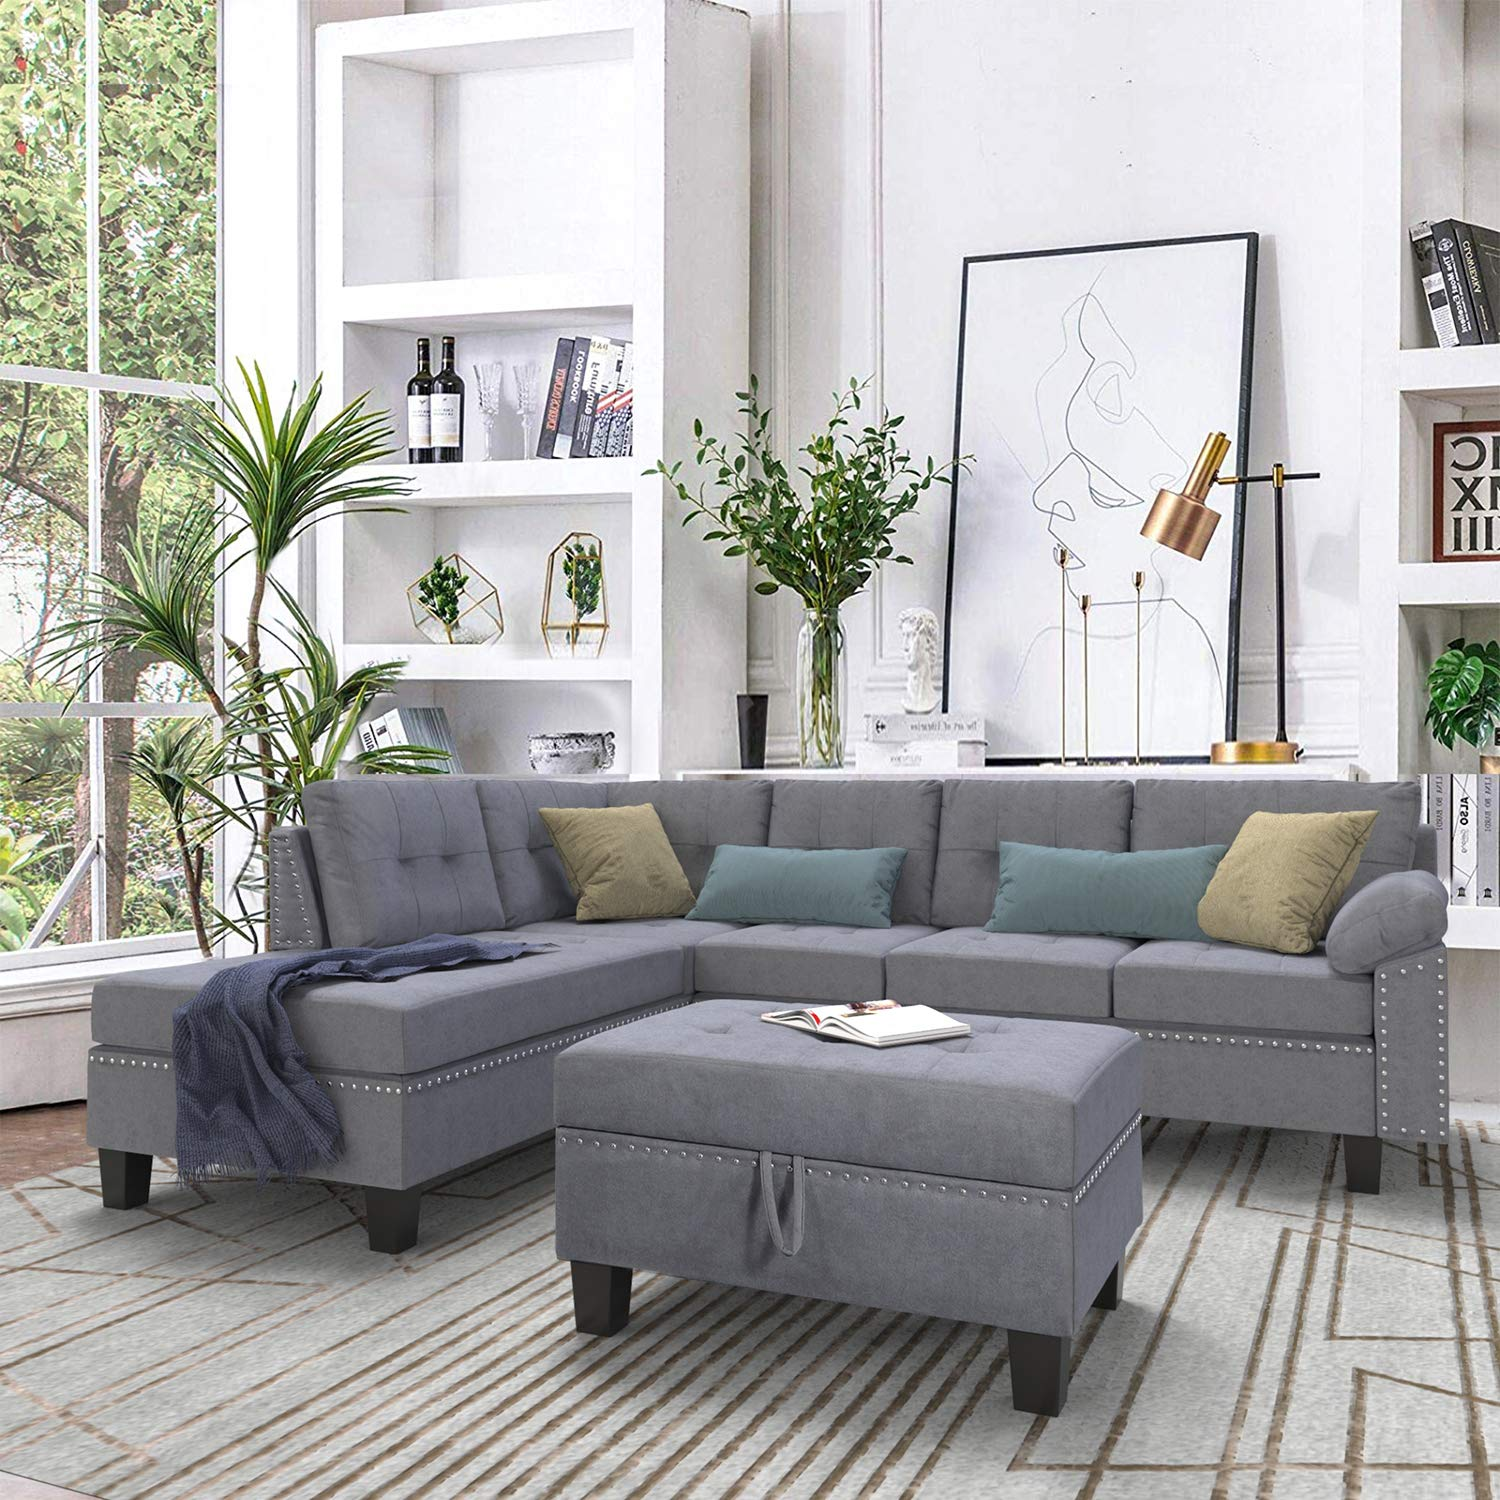 Prime Harper Bright Designs Sectional Sofa Couch With L Chaise Lounger And Storage Ottoman For Living Room Home Furniture Set Grey Buy Deals 4 U Inzonedesignstudio Interior Chair Design Inzonedesignstudiocom